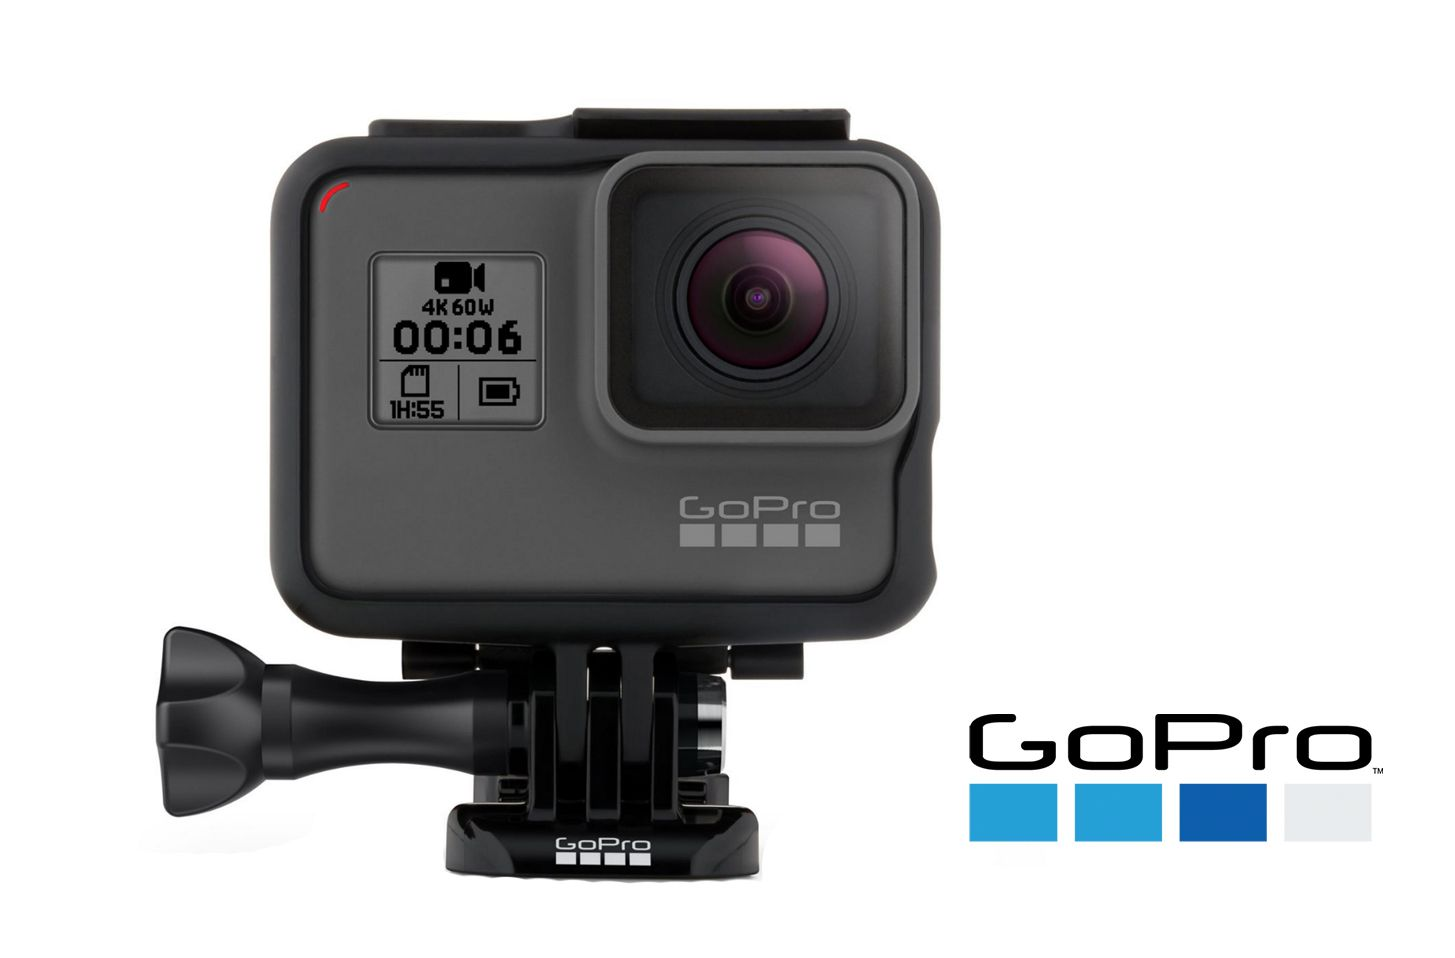 Here's where things went wrong for GoPro in 2017 Gopro